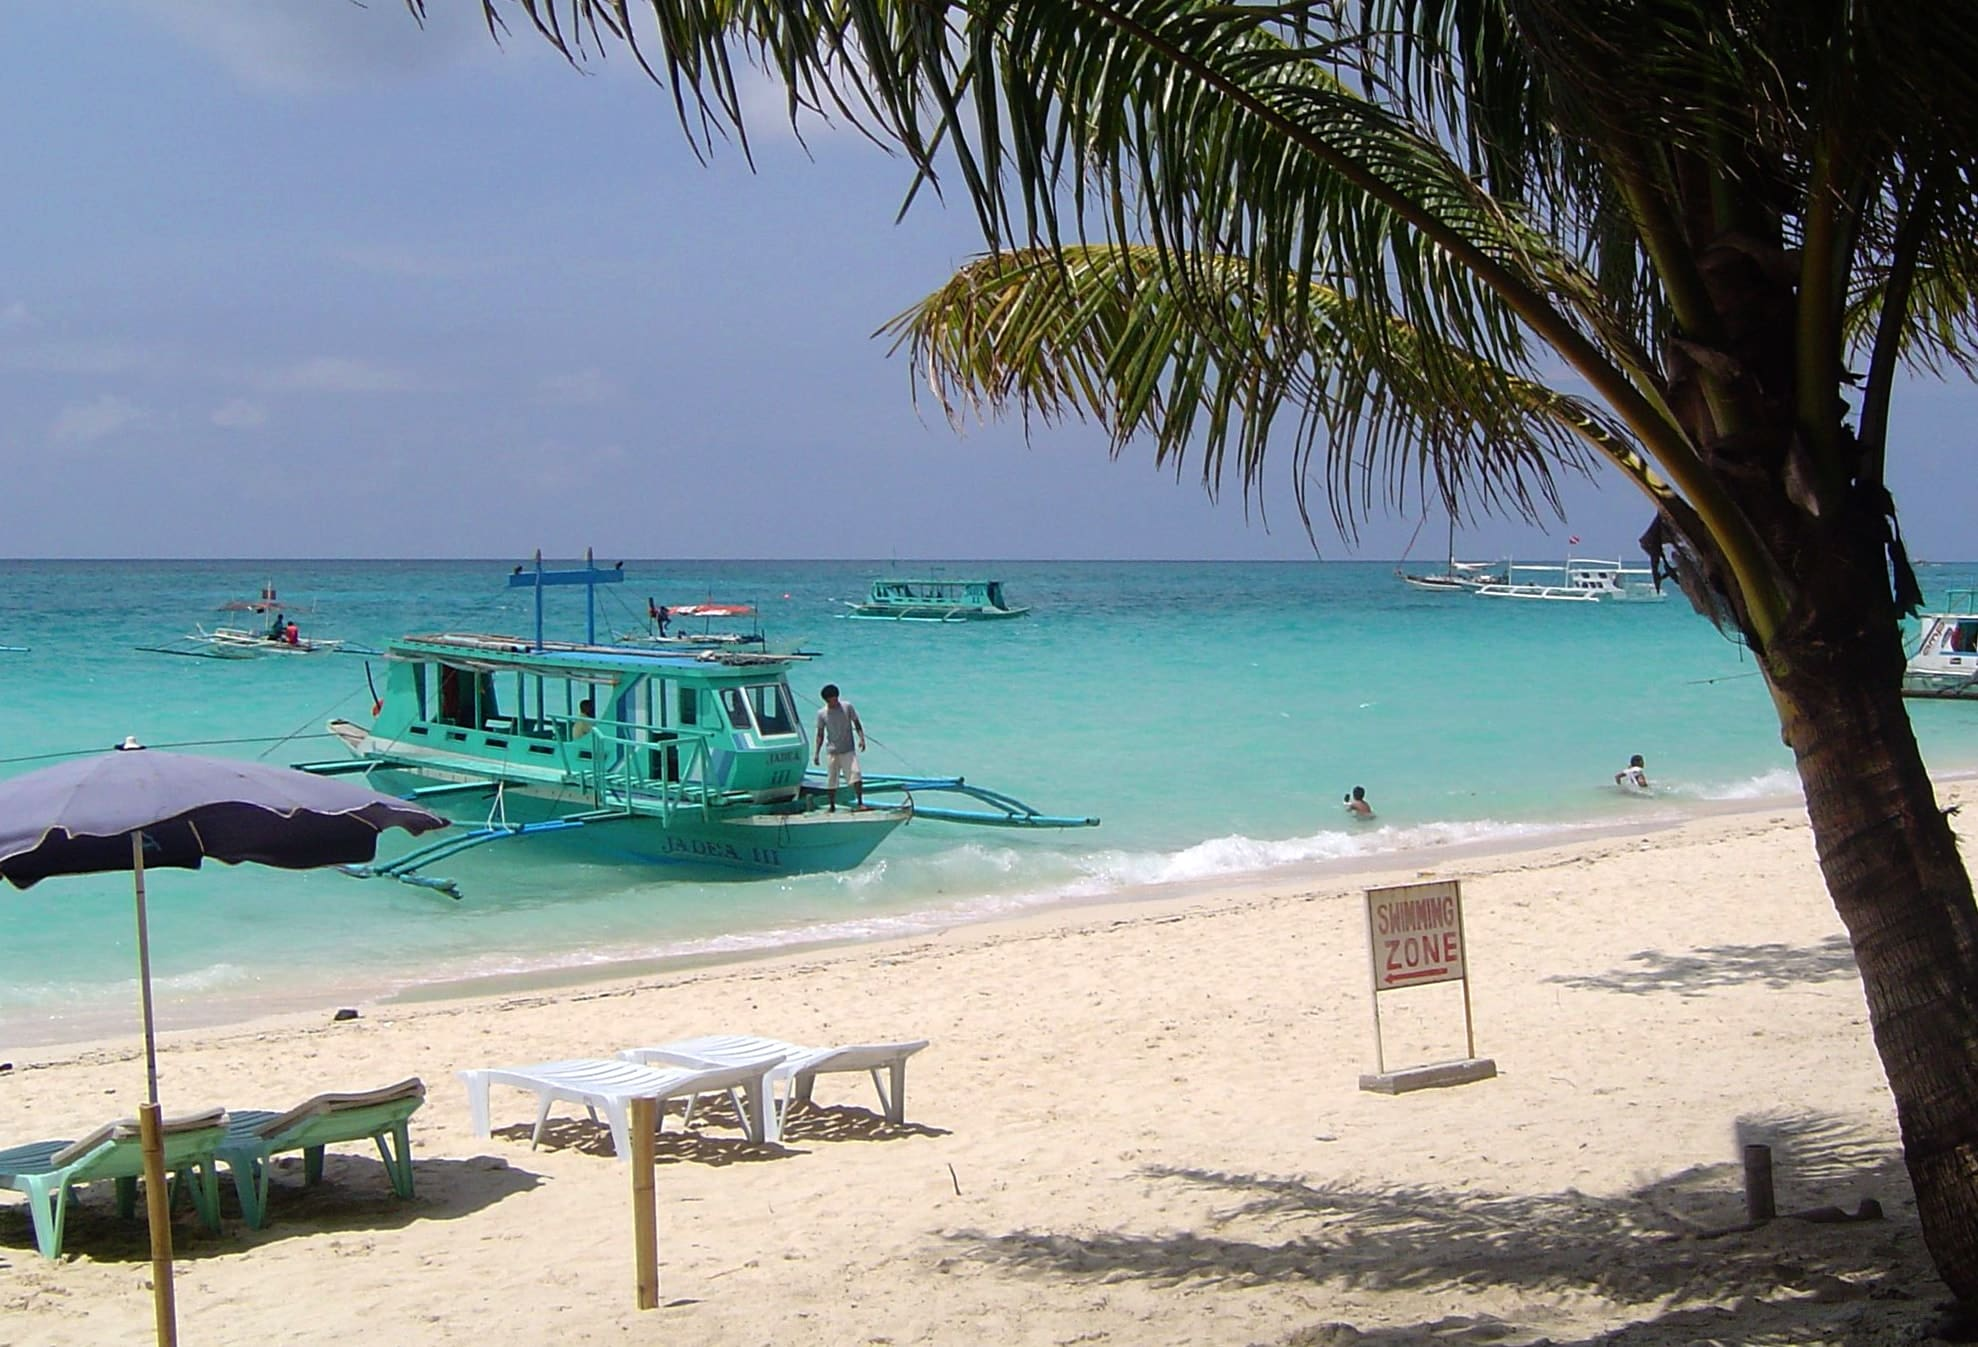 DPWH to Begin Road Widening Project in Boracay